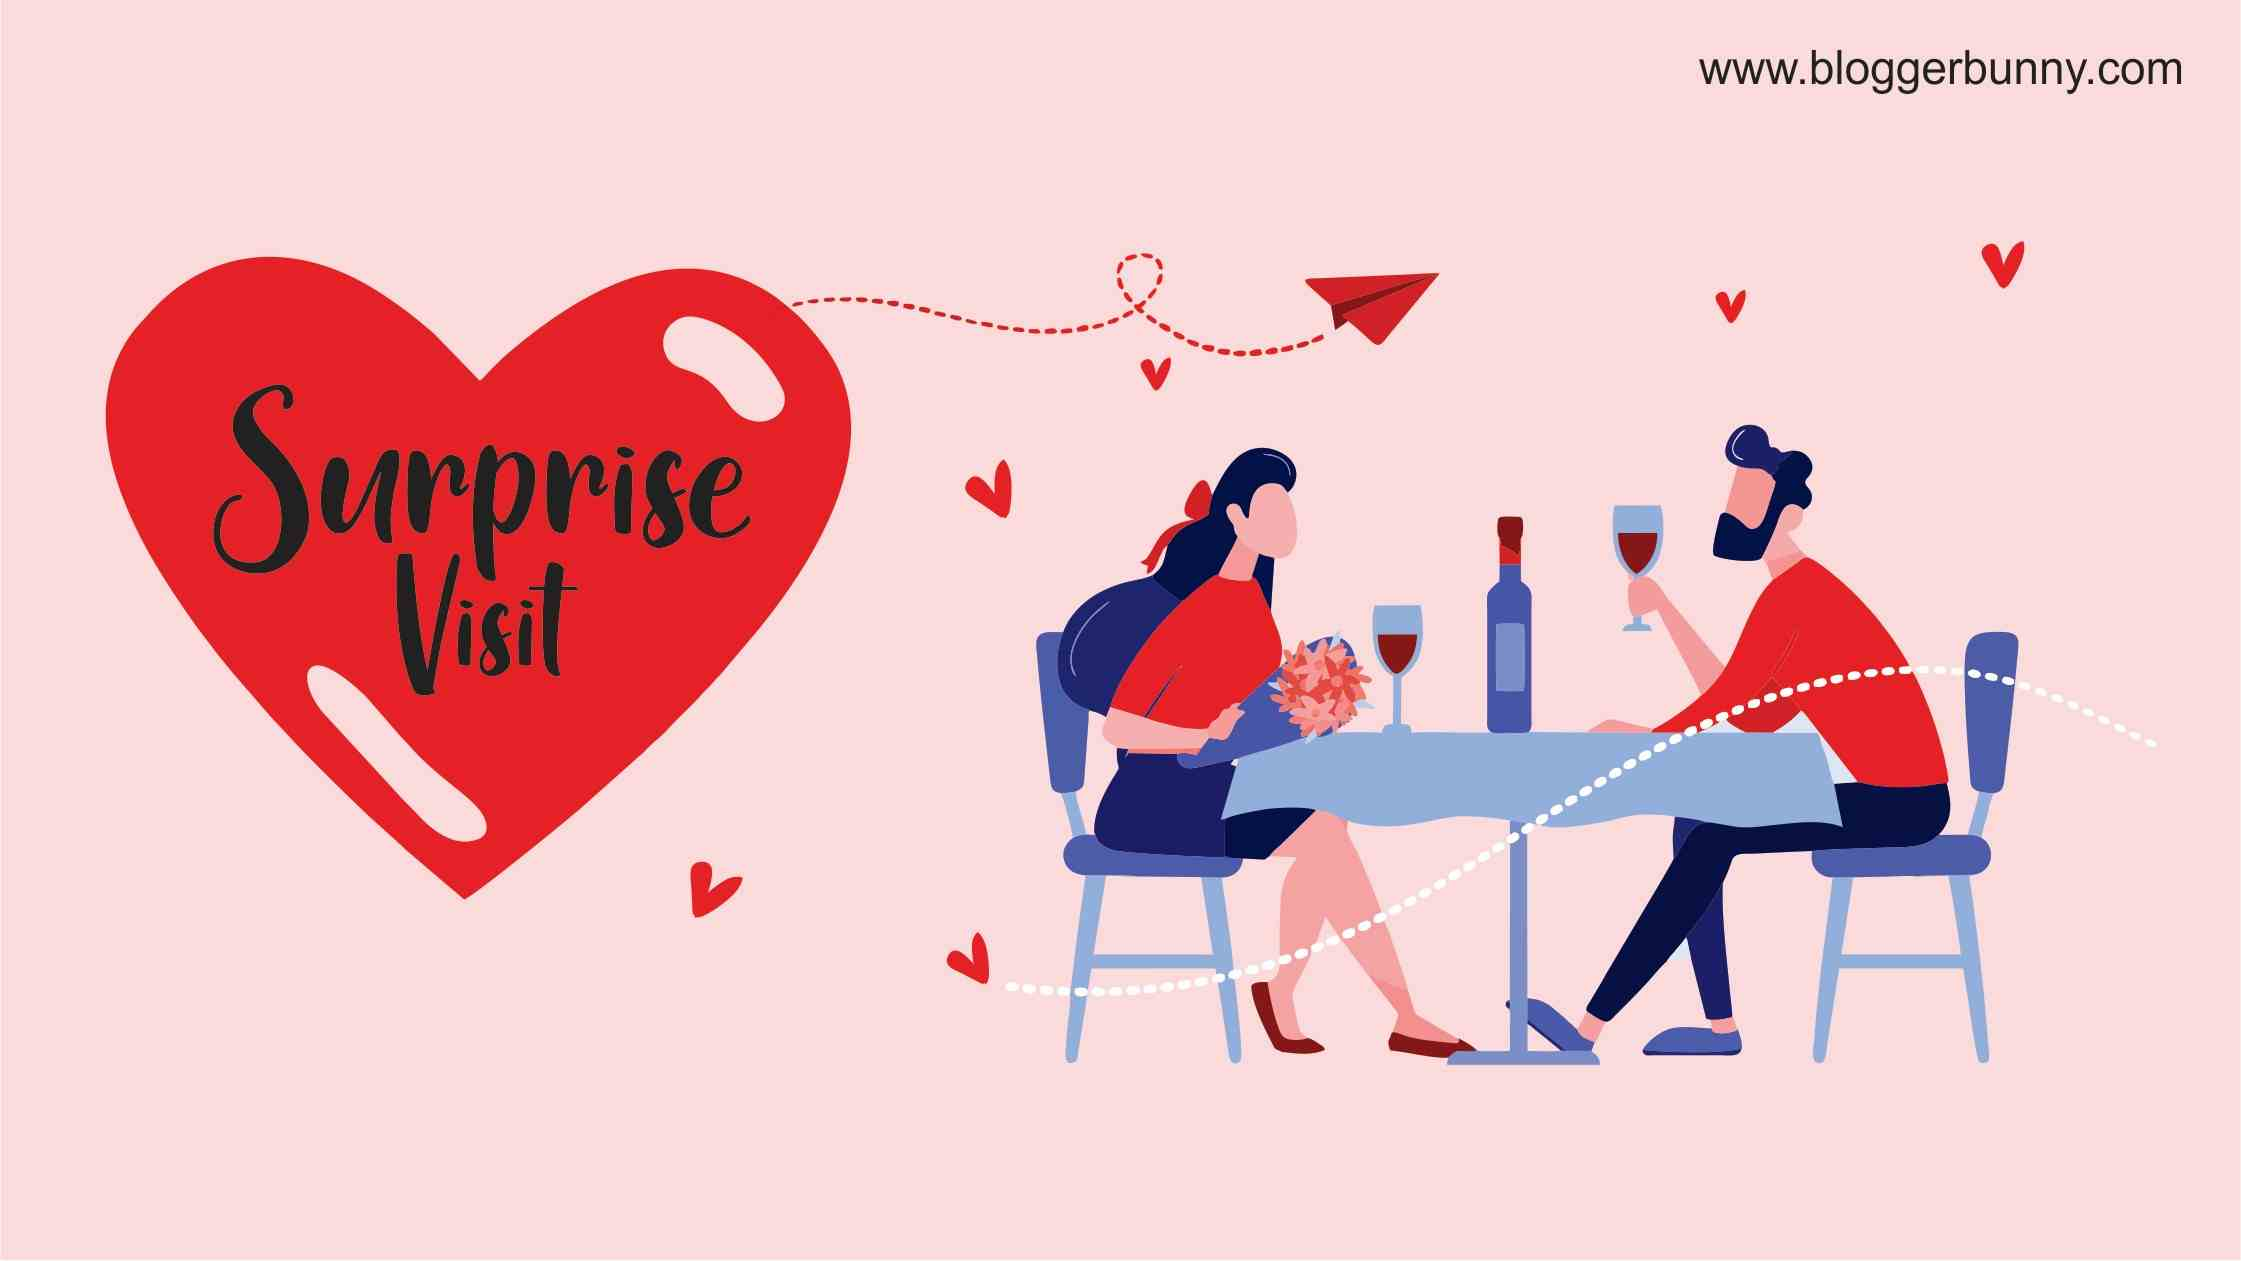 Surprise visit - How to Celebrate Valentine in Long Distance Relationship